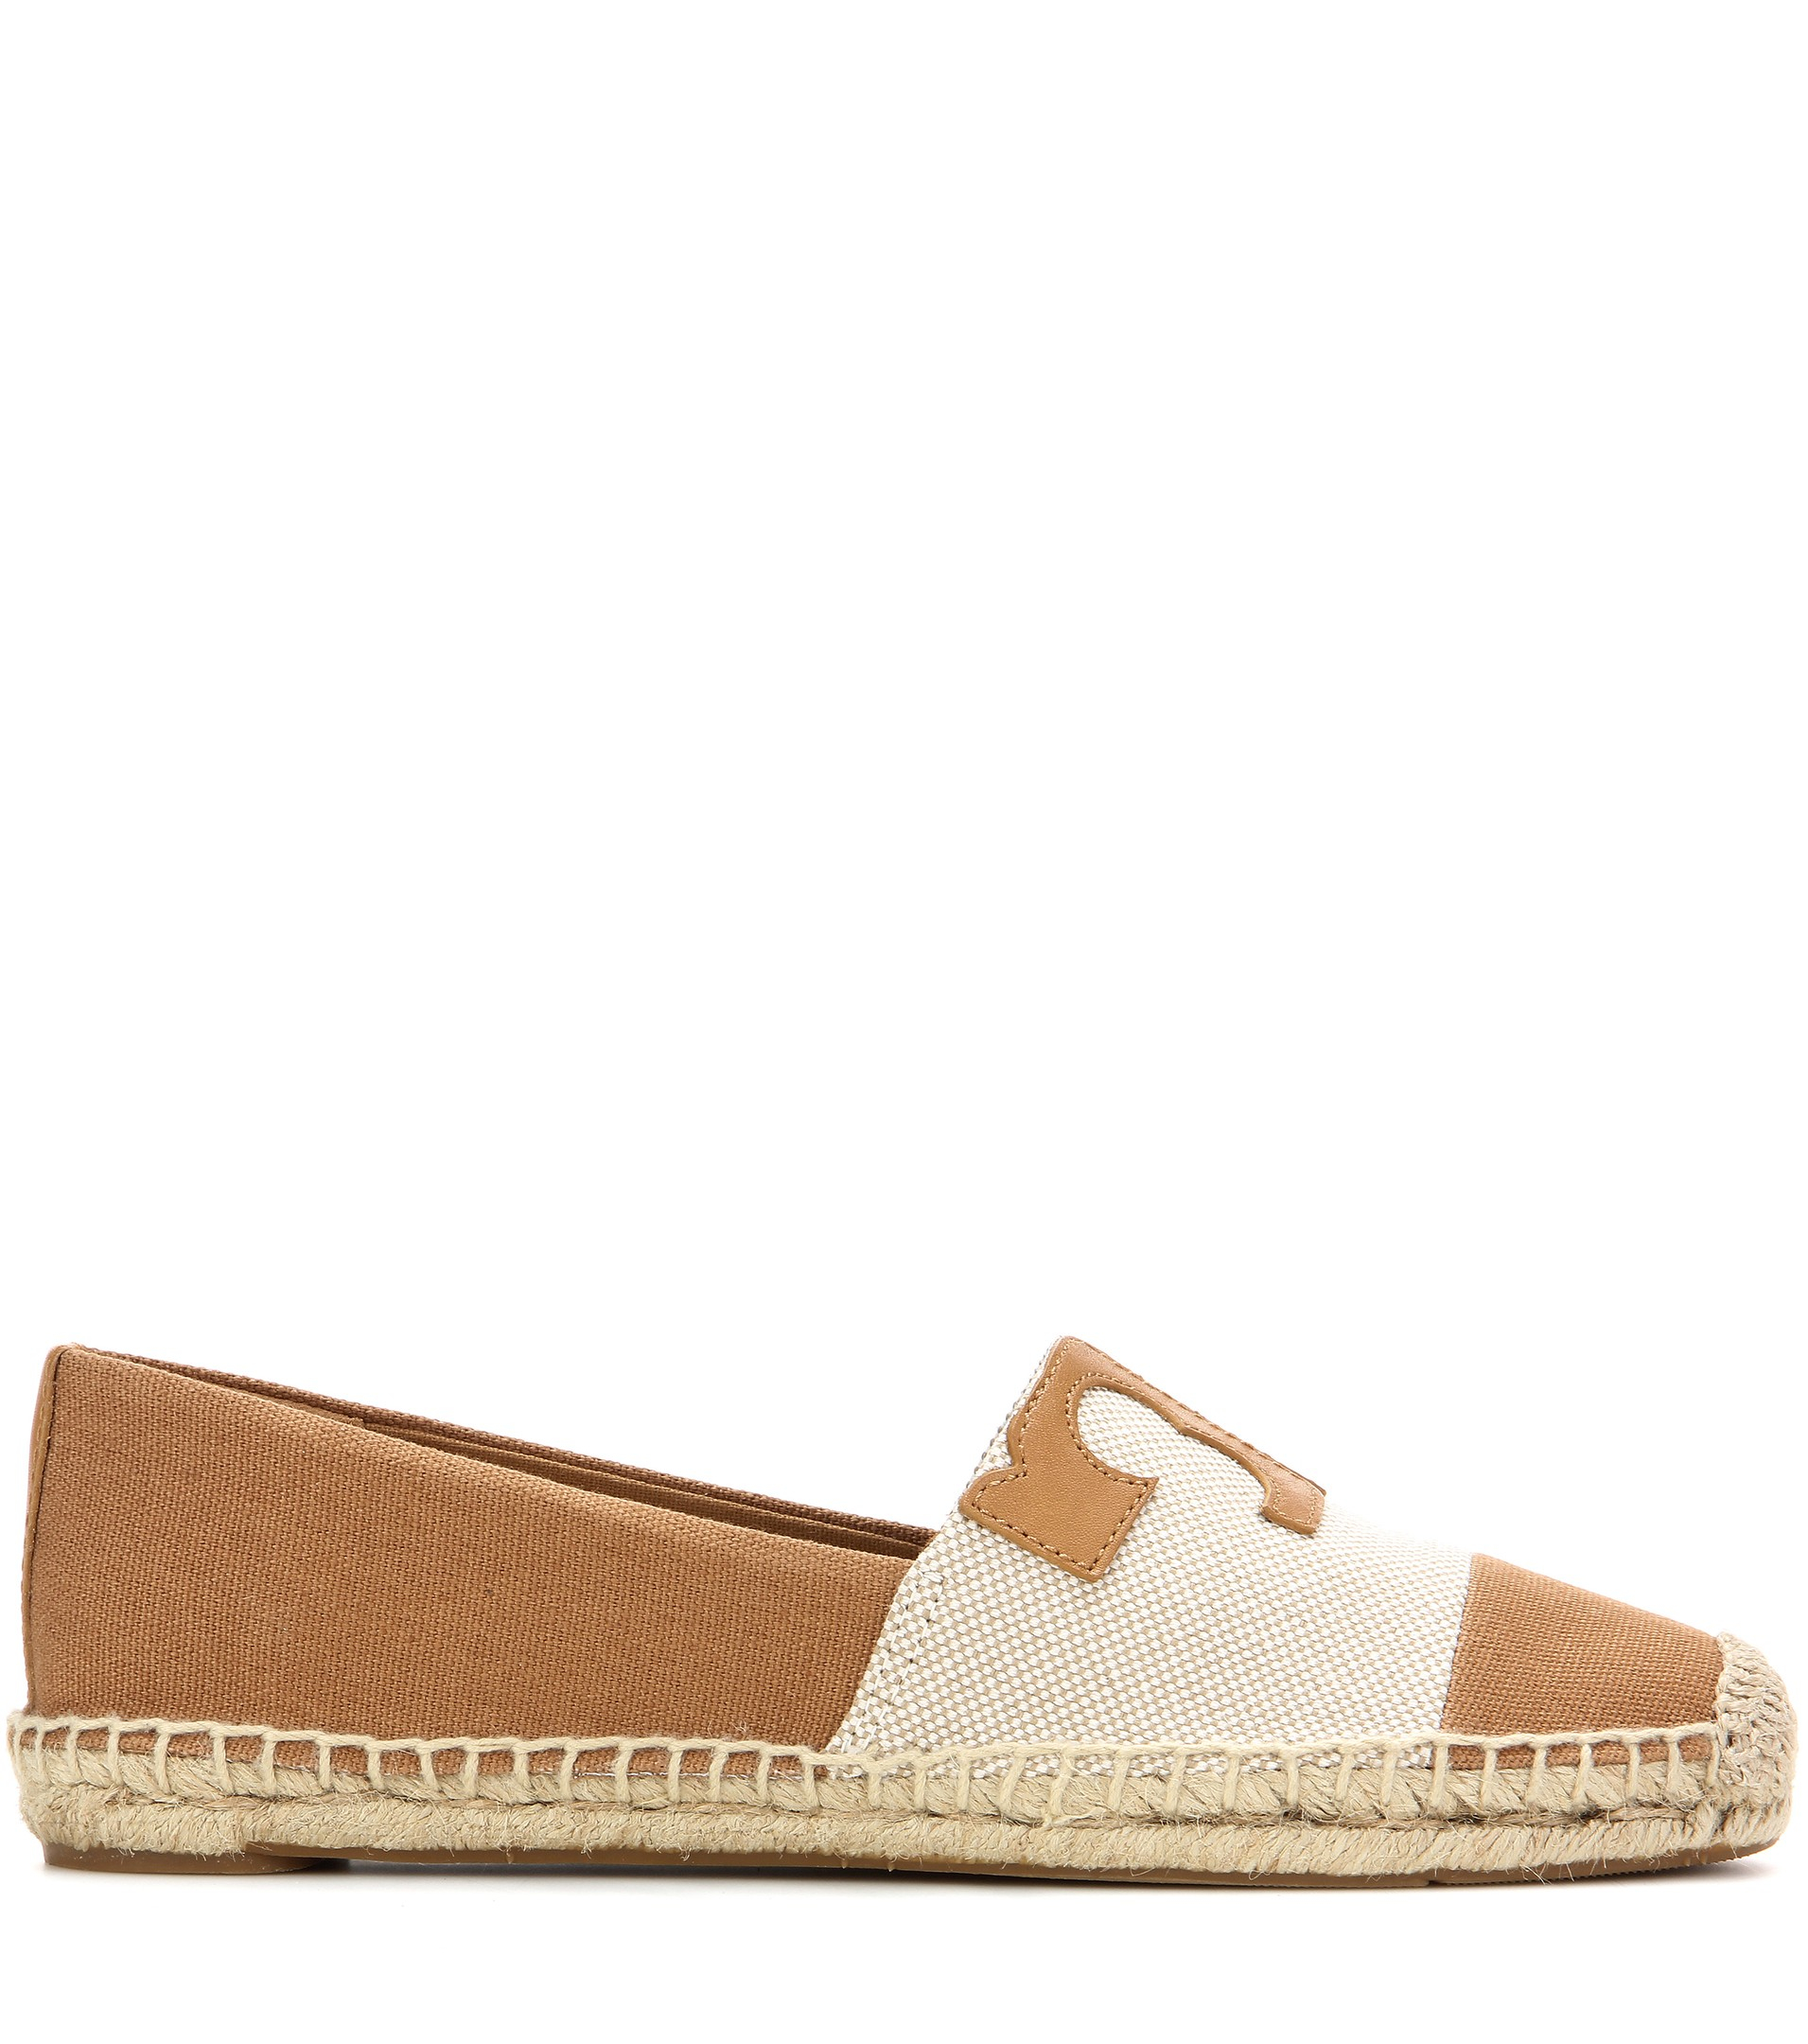 5b1358d17eb Tory Burch Veranda Espadrilles in Natural - Lyst